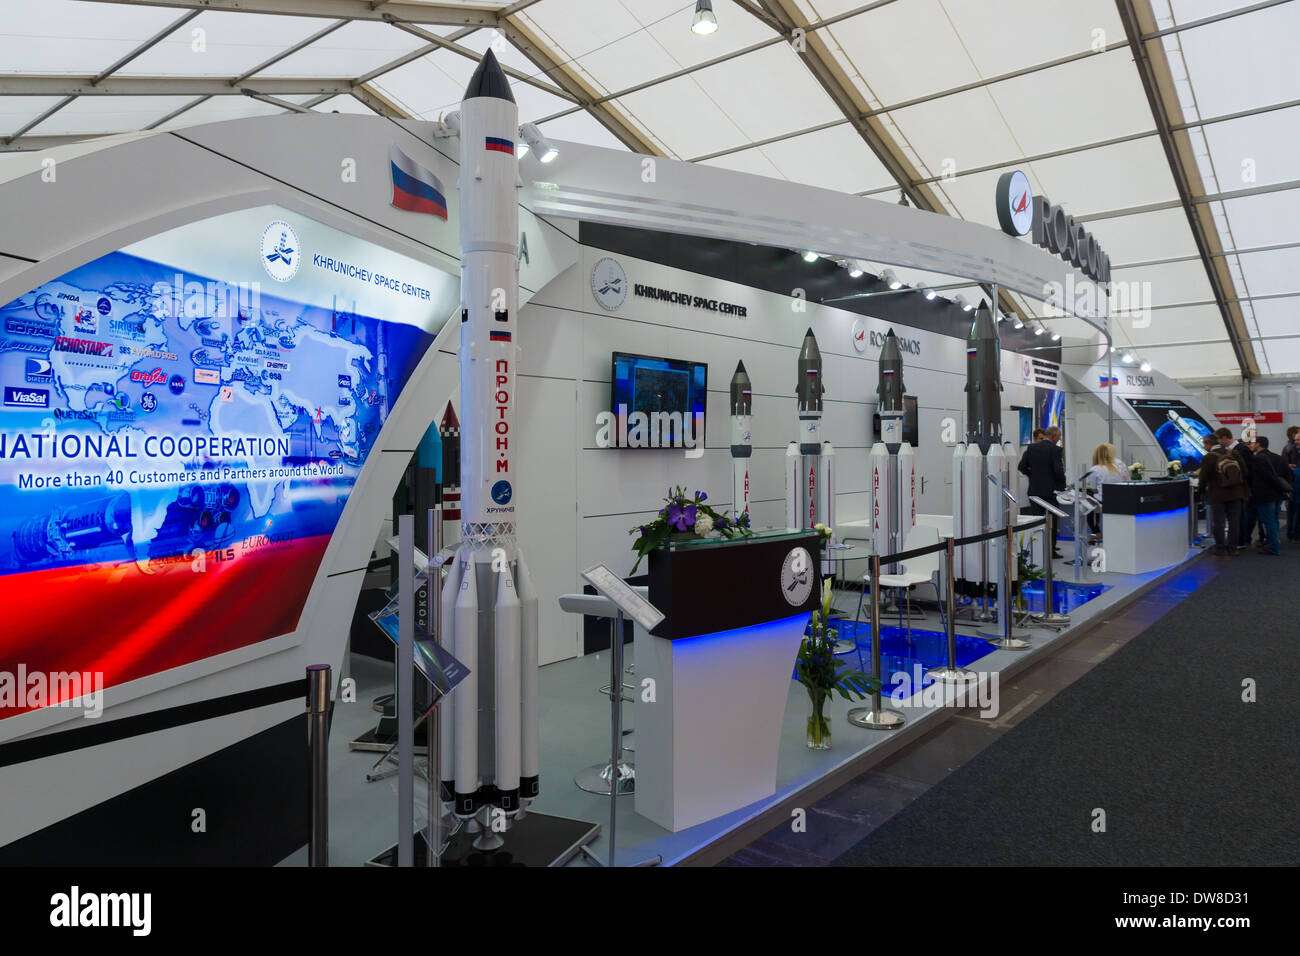 ILA Berlin Air Show 2012. Stand Russian Federal Space Agency. Roscosmos. Heavy class launch vehicles - Proton and Angara - Stock Image